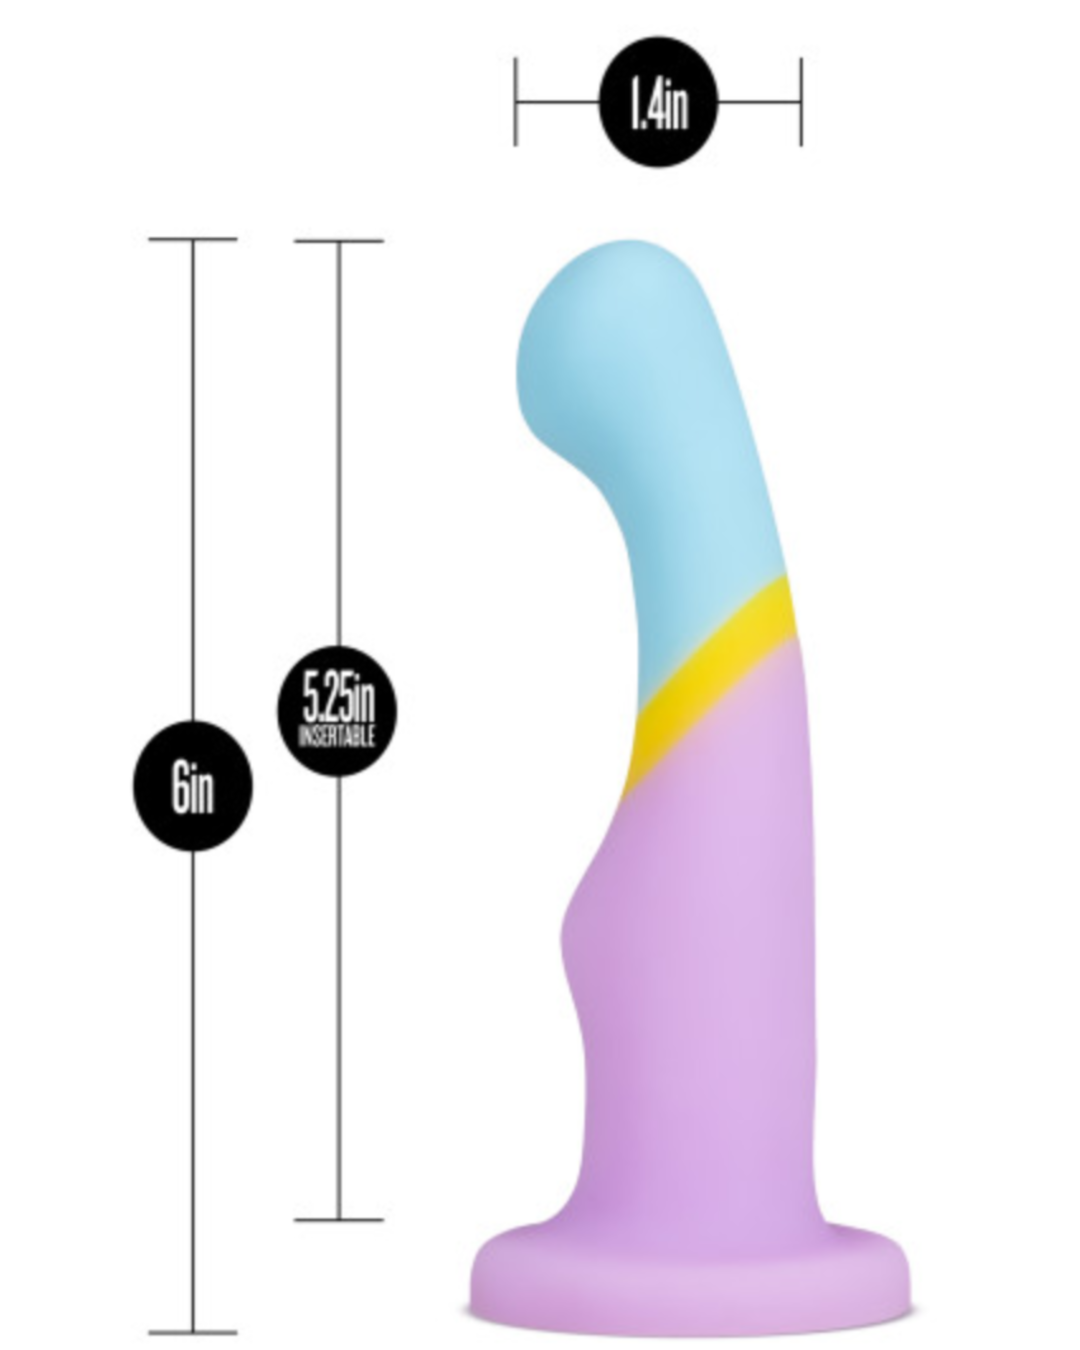 Avant D14 6 Inch Dildo by Blush Novelties - Heart of Gold Dimensions